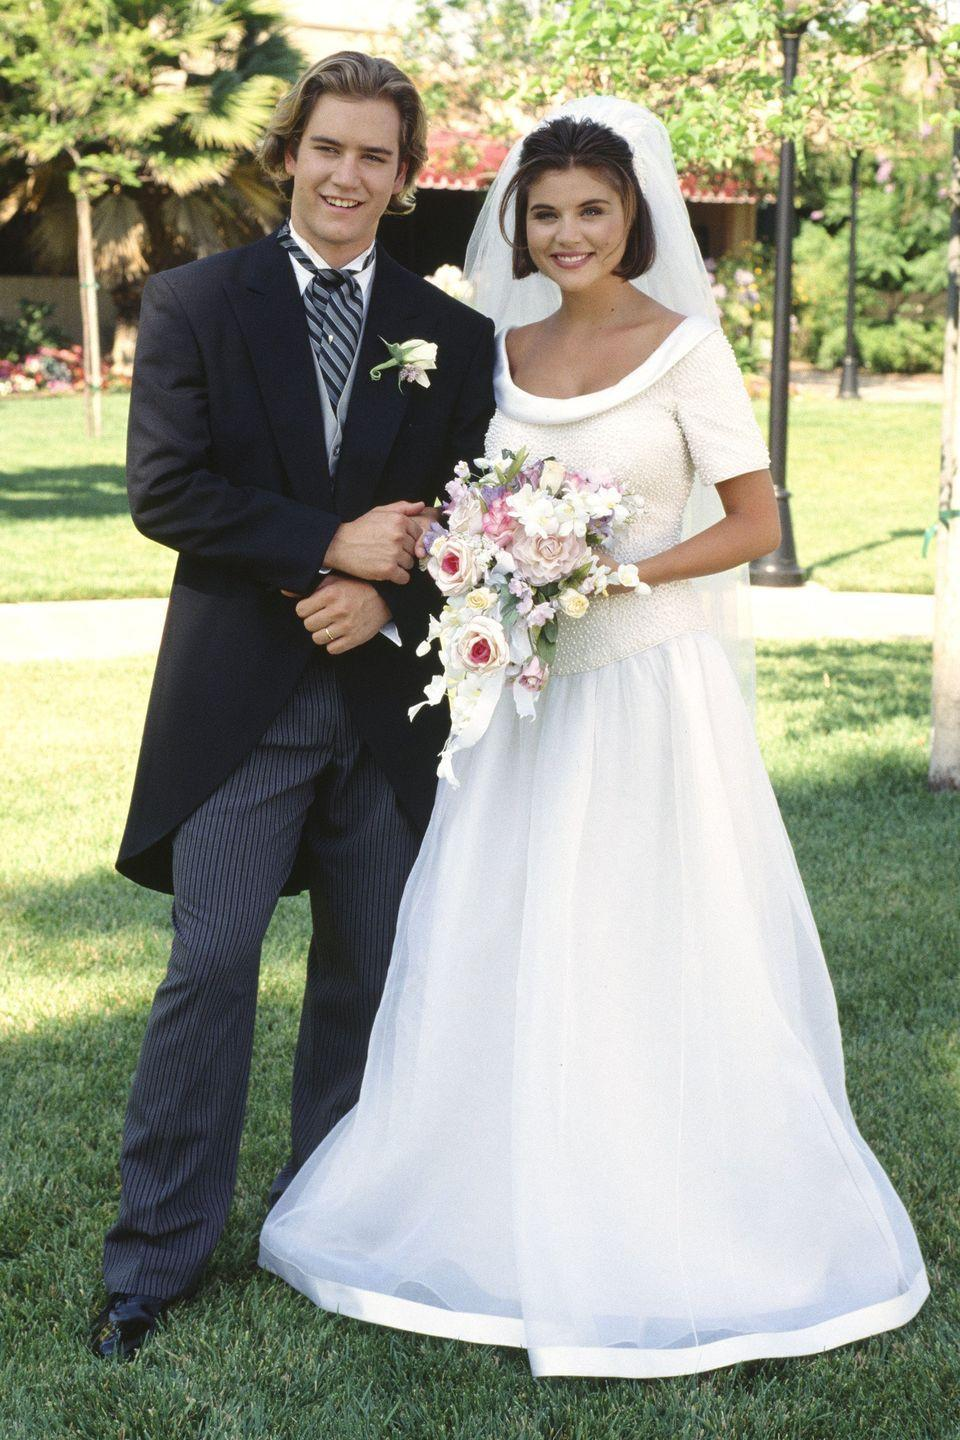 """<p>High school sweethearts Kelly and Zack married in a beautiful outdoor wedding in Las Vegas. She wore a scoop-neck wedding dress with sleeves and a veil tucked into her short hair. The nuptials took place during the series finale of <span class=""""redactor-unlink""""><em>Saved by the Bell: The College Years</em></span>. </p>"""